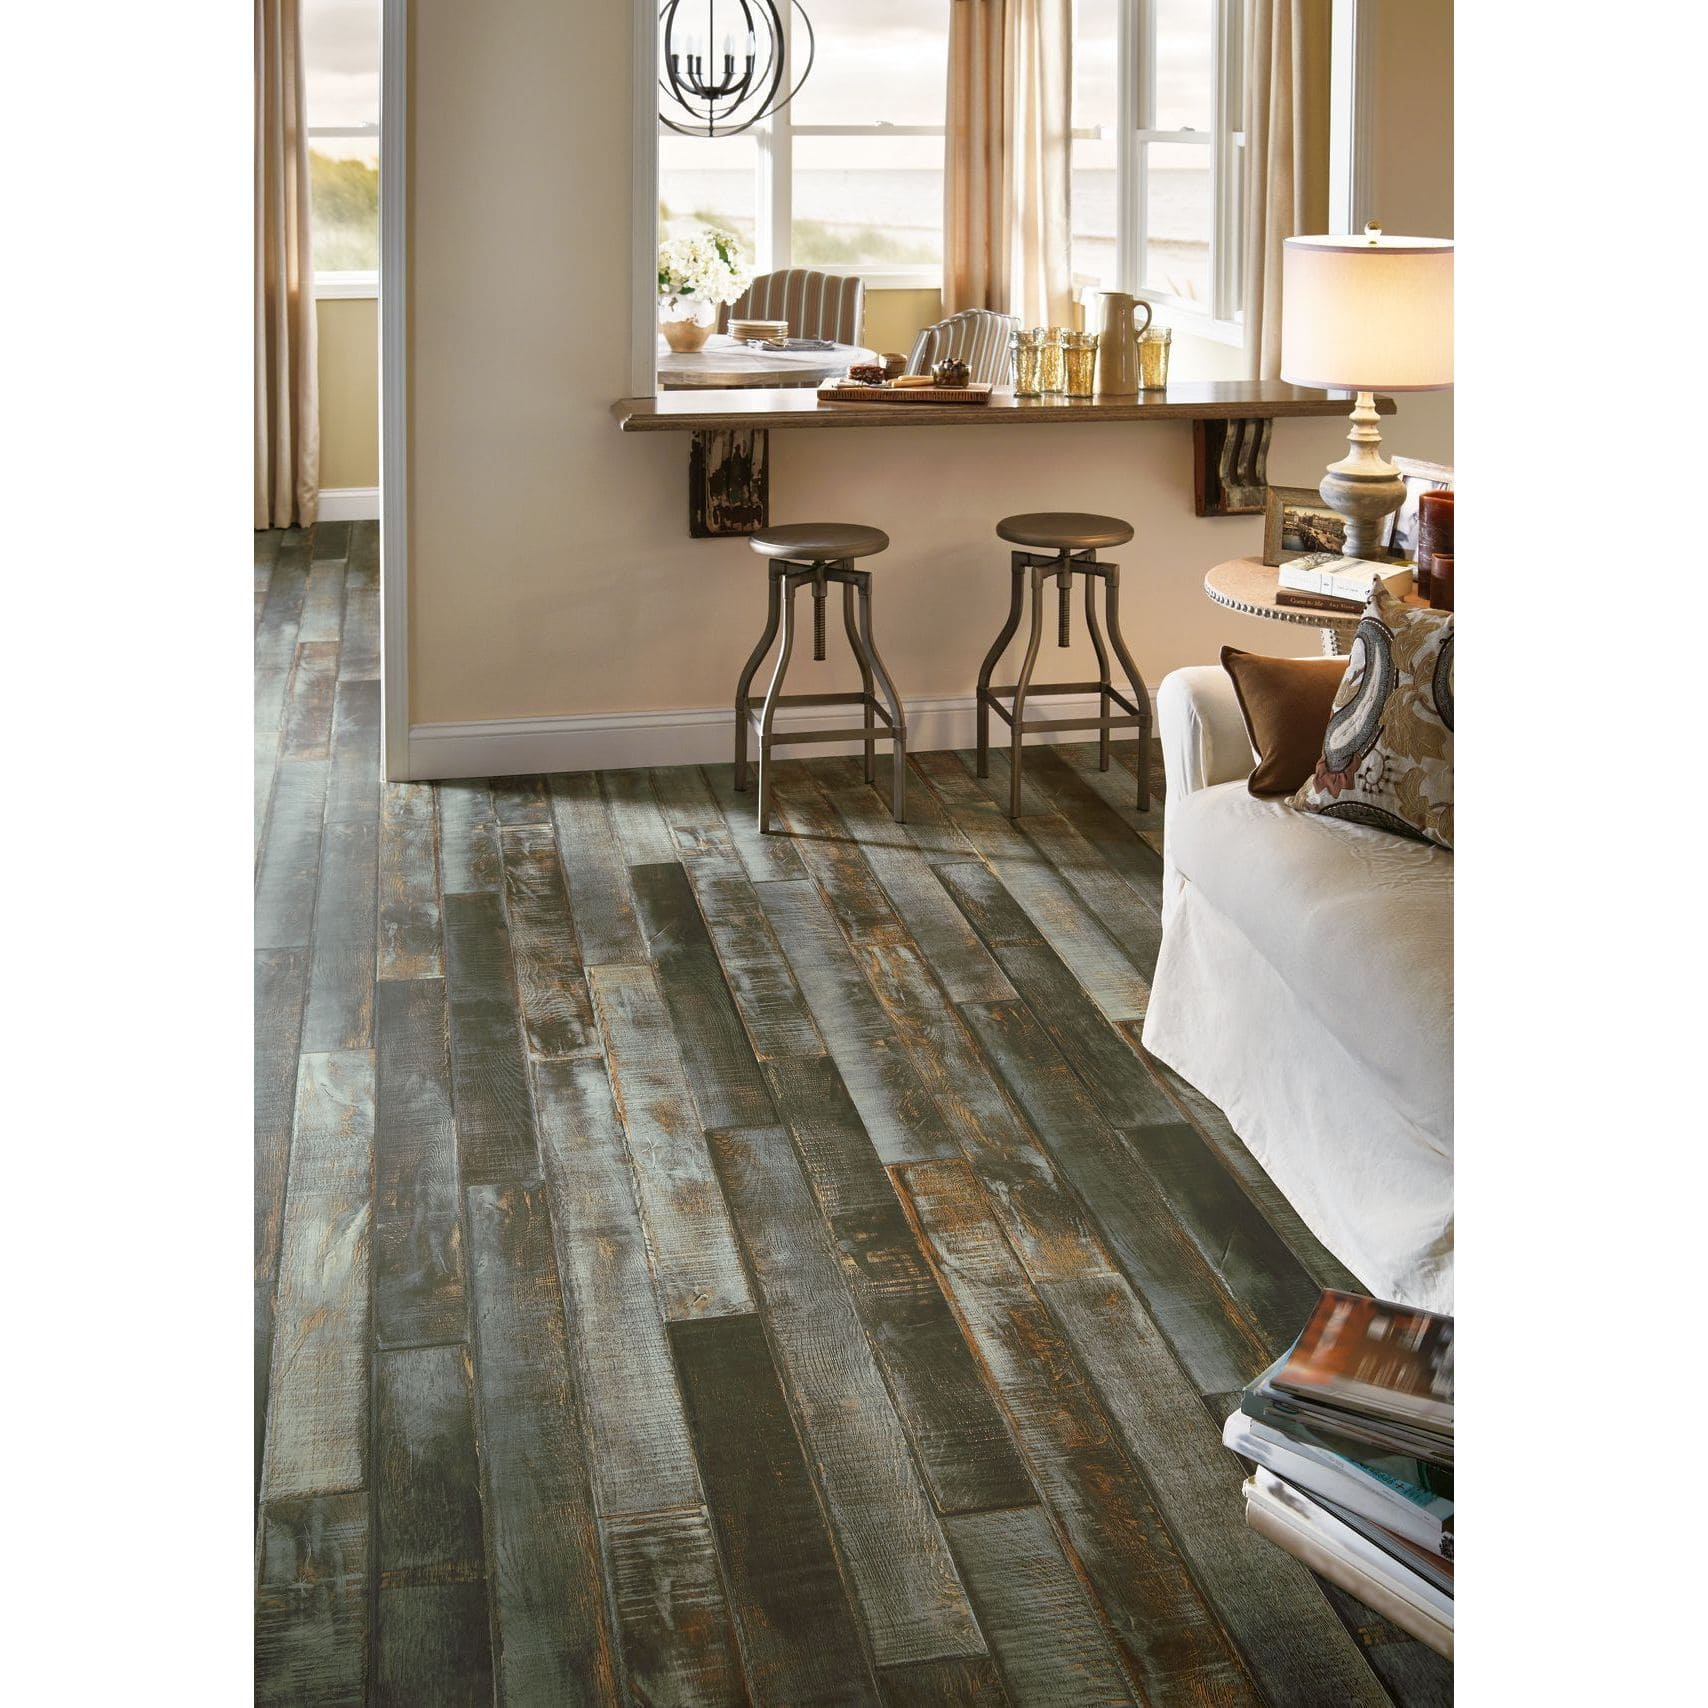 Laminate flooring for less for Granite remnant cost per square foot